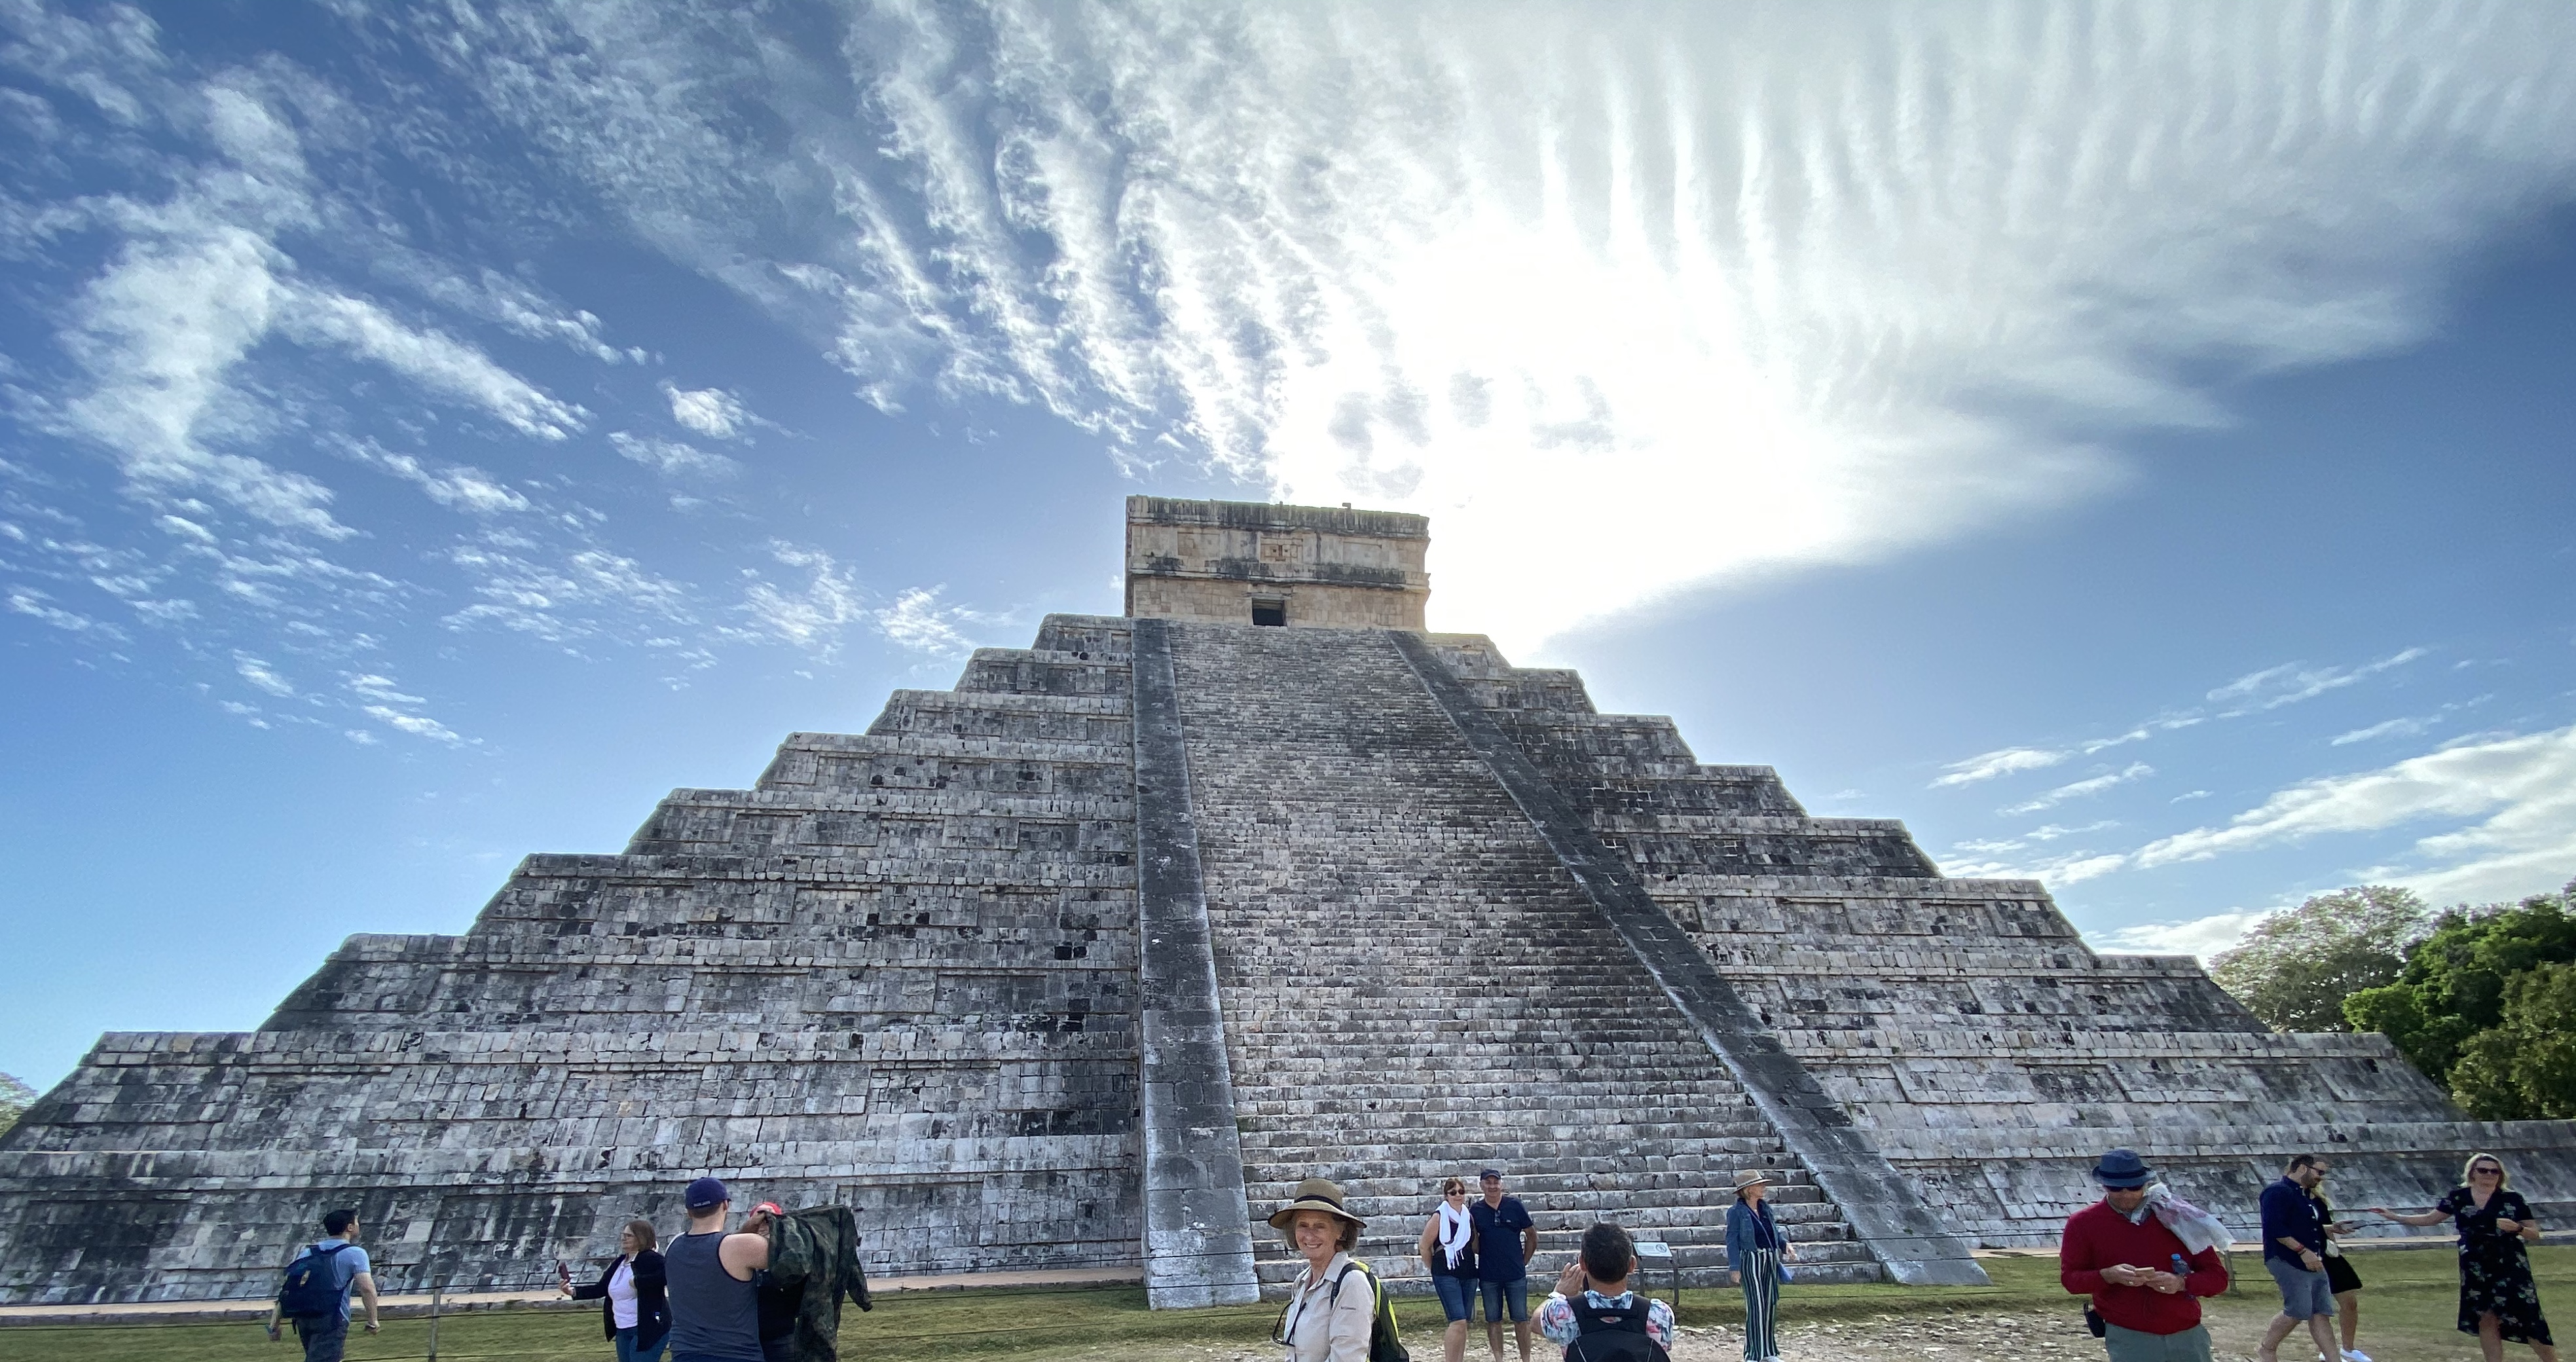 Greetings from Chichen Itza